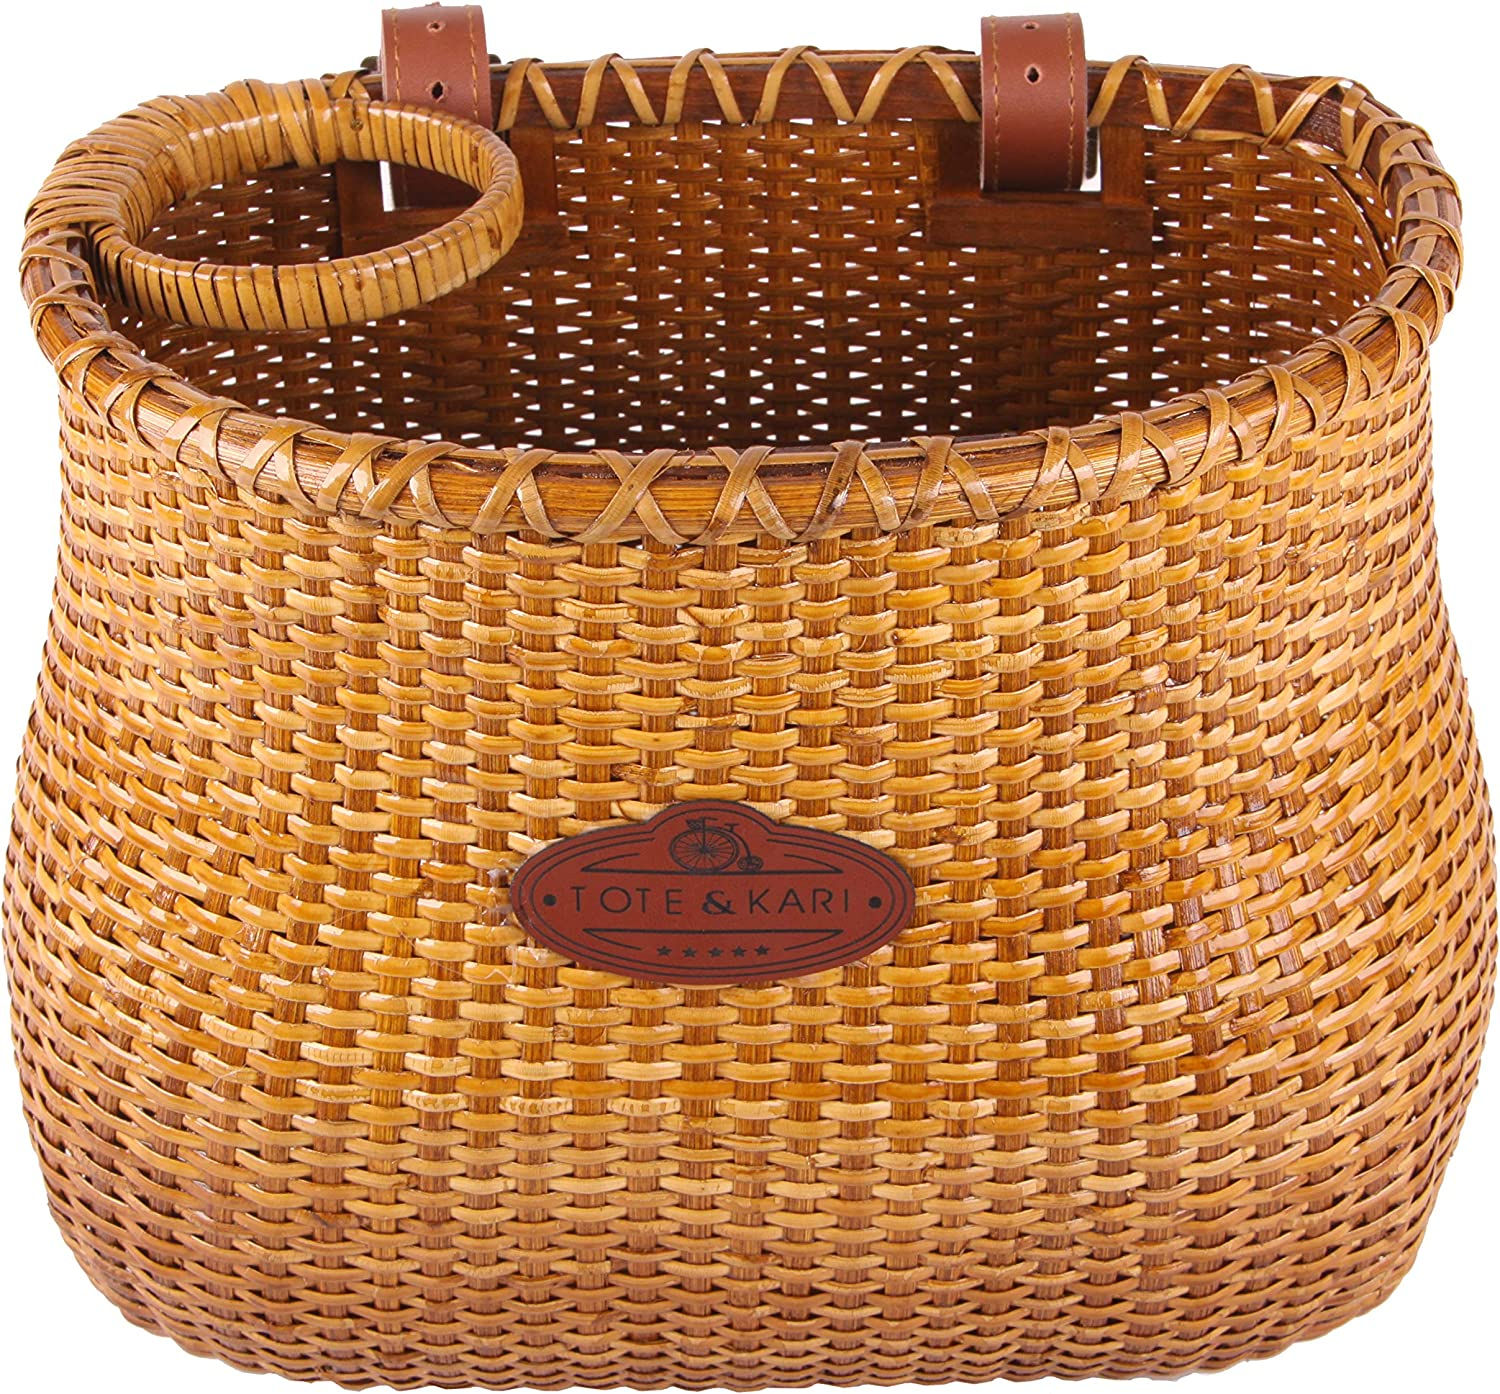 Classic Vintage Style Handmade Natural Woven Rattan Wicker Also fits Scooter Quick Detachable Tote /& Kari Bicycle Basket Made for Front Handlebar of Adult Beach Cruiser Bike it has a Cup Holder